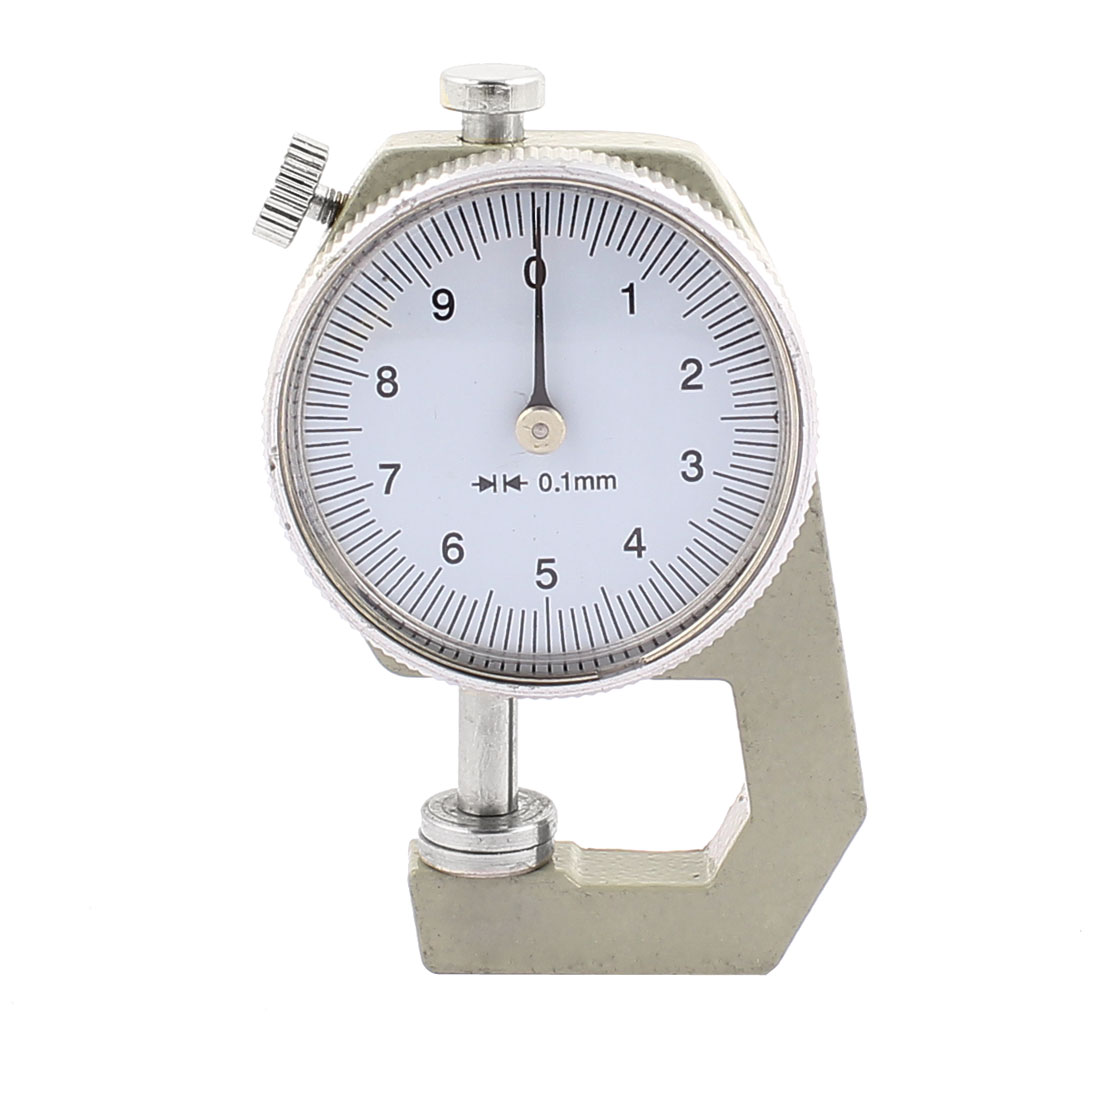 0 to 10mm Measuring Range 0.01mm Resolution Round Dial Thickness Gauge C-01